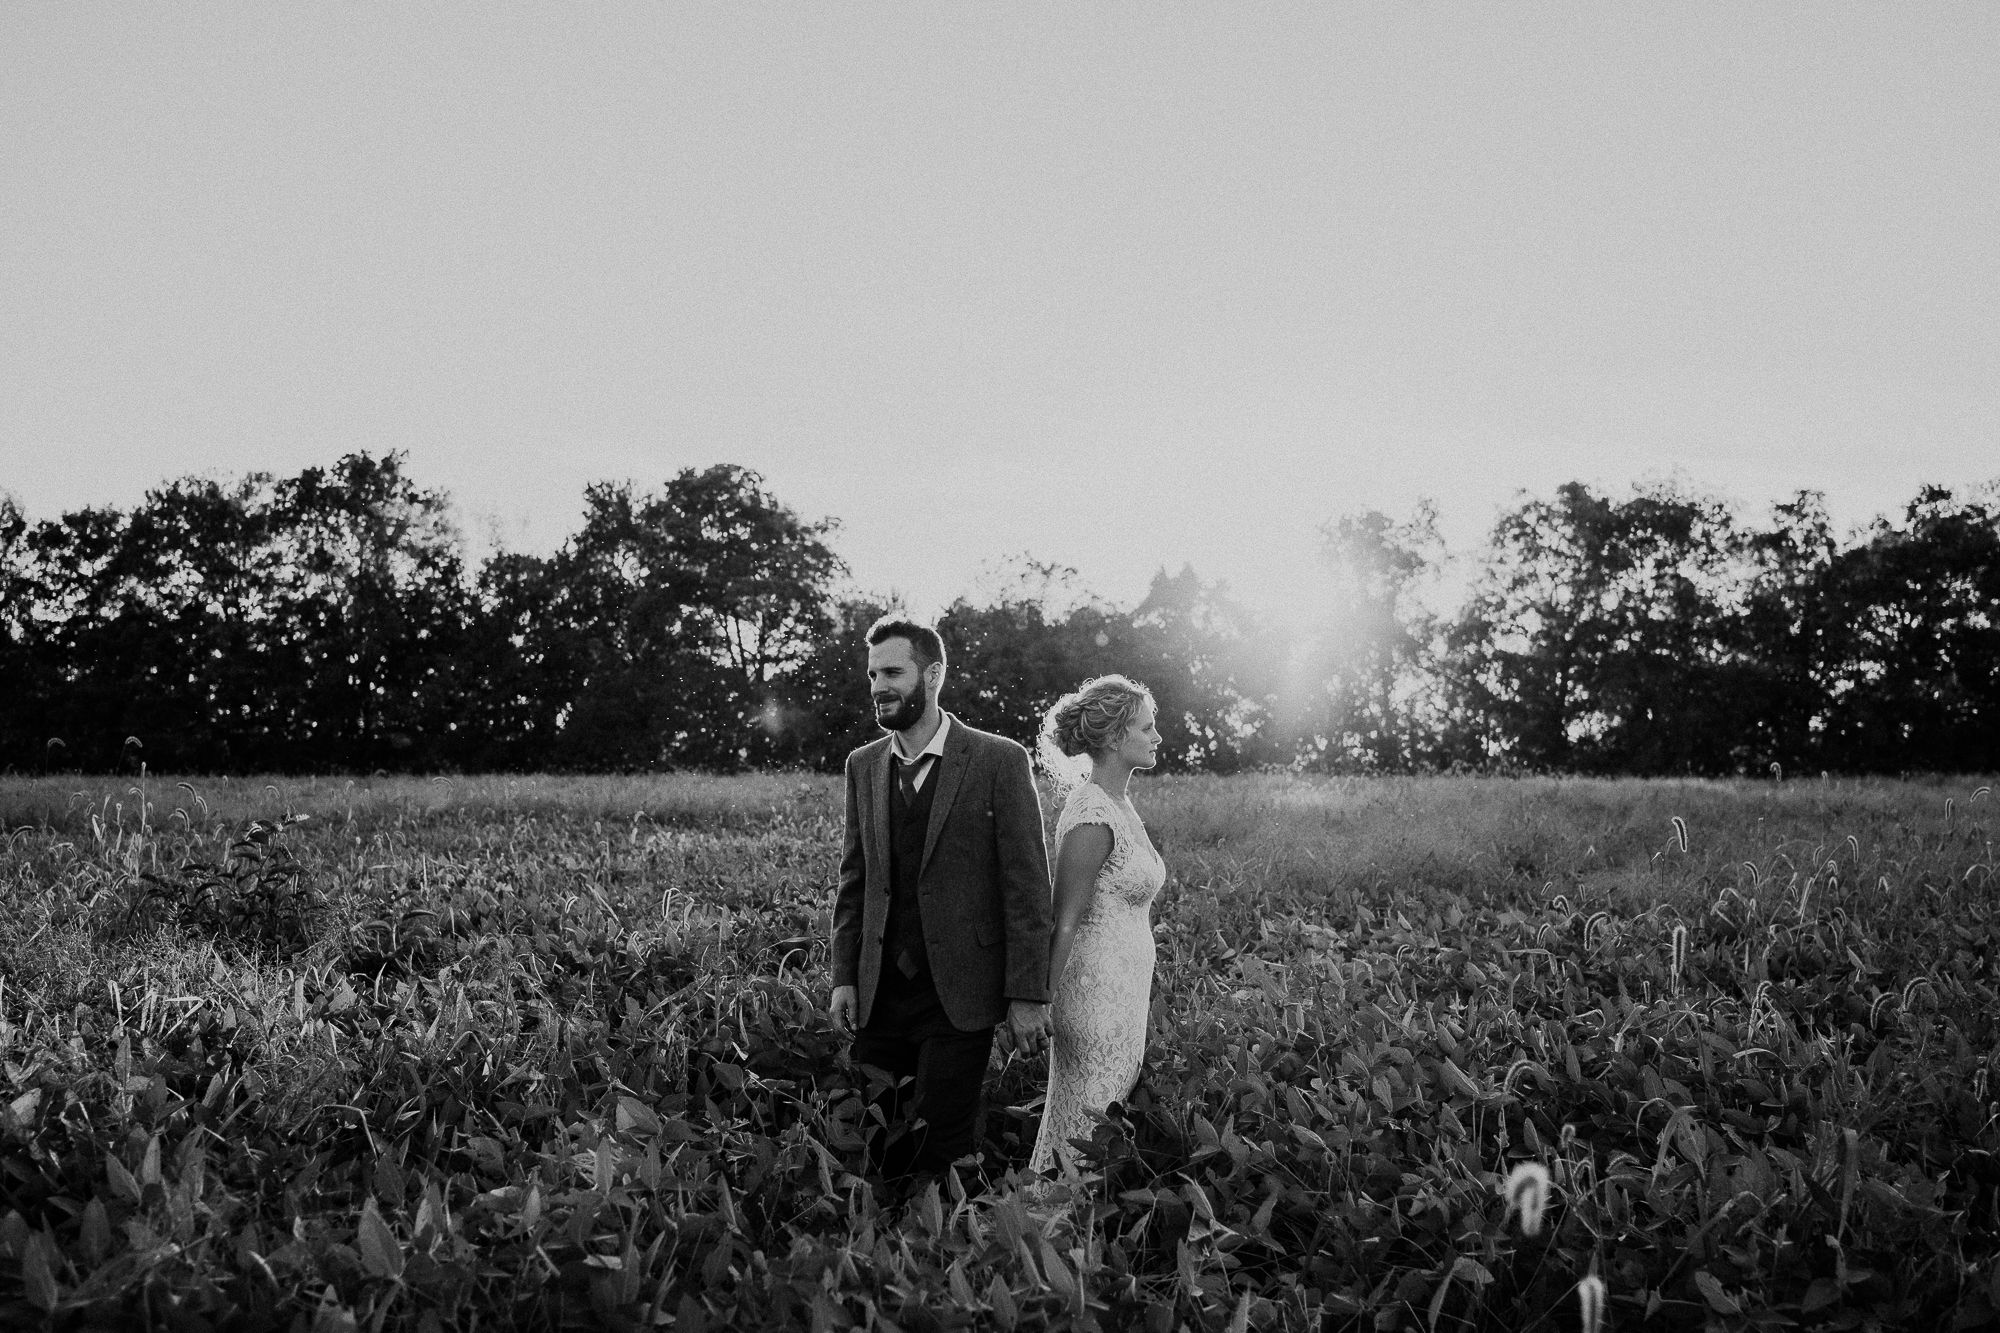 Jenny+James_Married_Blog_0126.jpg